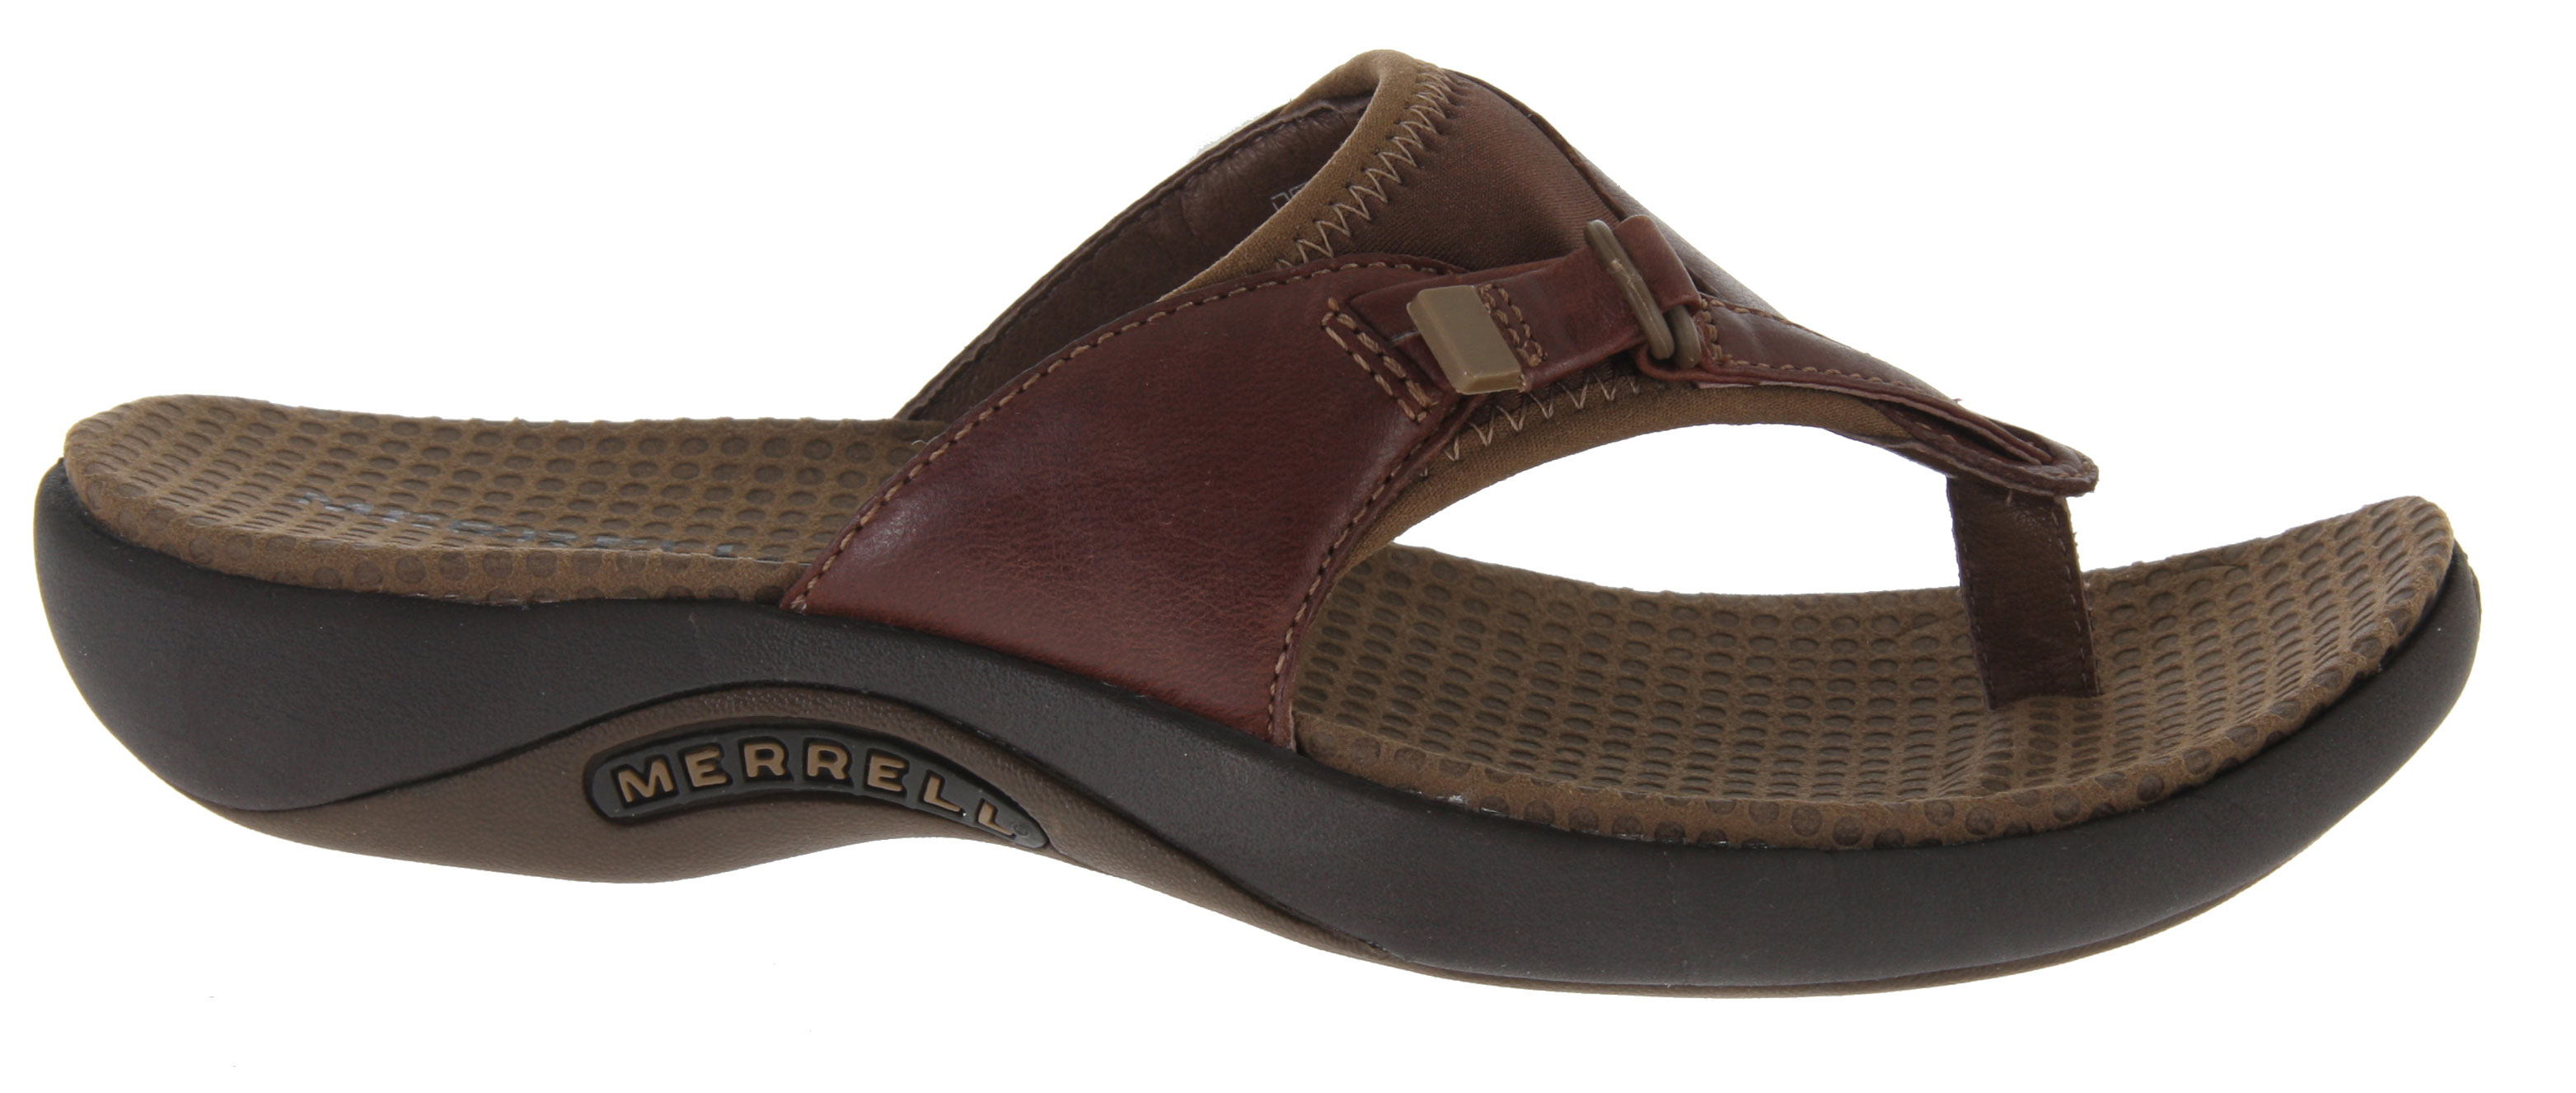 Surf On the Gardena Thong sandal Merrell laid a leaf of nubuck leather over a thong and added neoprene/Lycra to give you a comfortable, beach-tight fit. An EVA midsole with gender-specific QForm (R) Comfort stride alignment combines with an Oasis Sole for highly cushioned traction.Key Features of the Merrell Gardena Thong Sandals: Cement construction provides lightweight durability Nubuck leather and Lycra (R) upper Lycra (R) lining Microfiber wrapped anatomical footbed with Aegis (R) antimicrobial solution Molded nylon arch shank QForm (R) comfort provides women's specific stride-sequenced cushioning Merrell (R) air cushion in the heel absorbs shock and adds stability Merrell Oasis Sole Sticky rubber Weight: 11 ozs. - $48.95